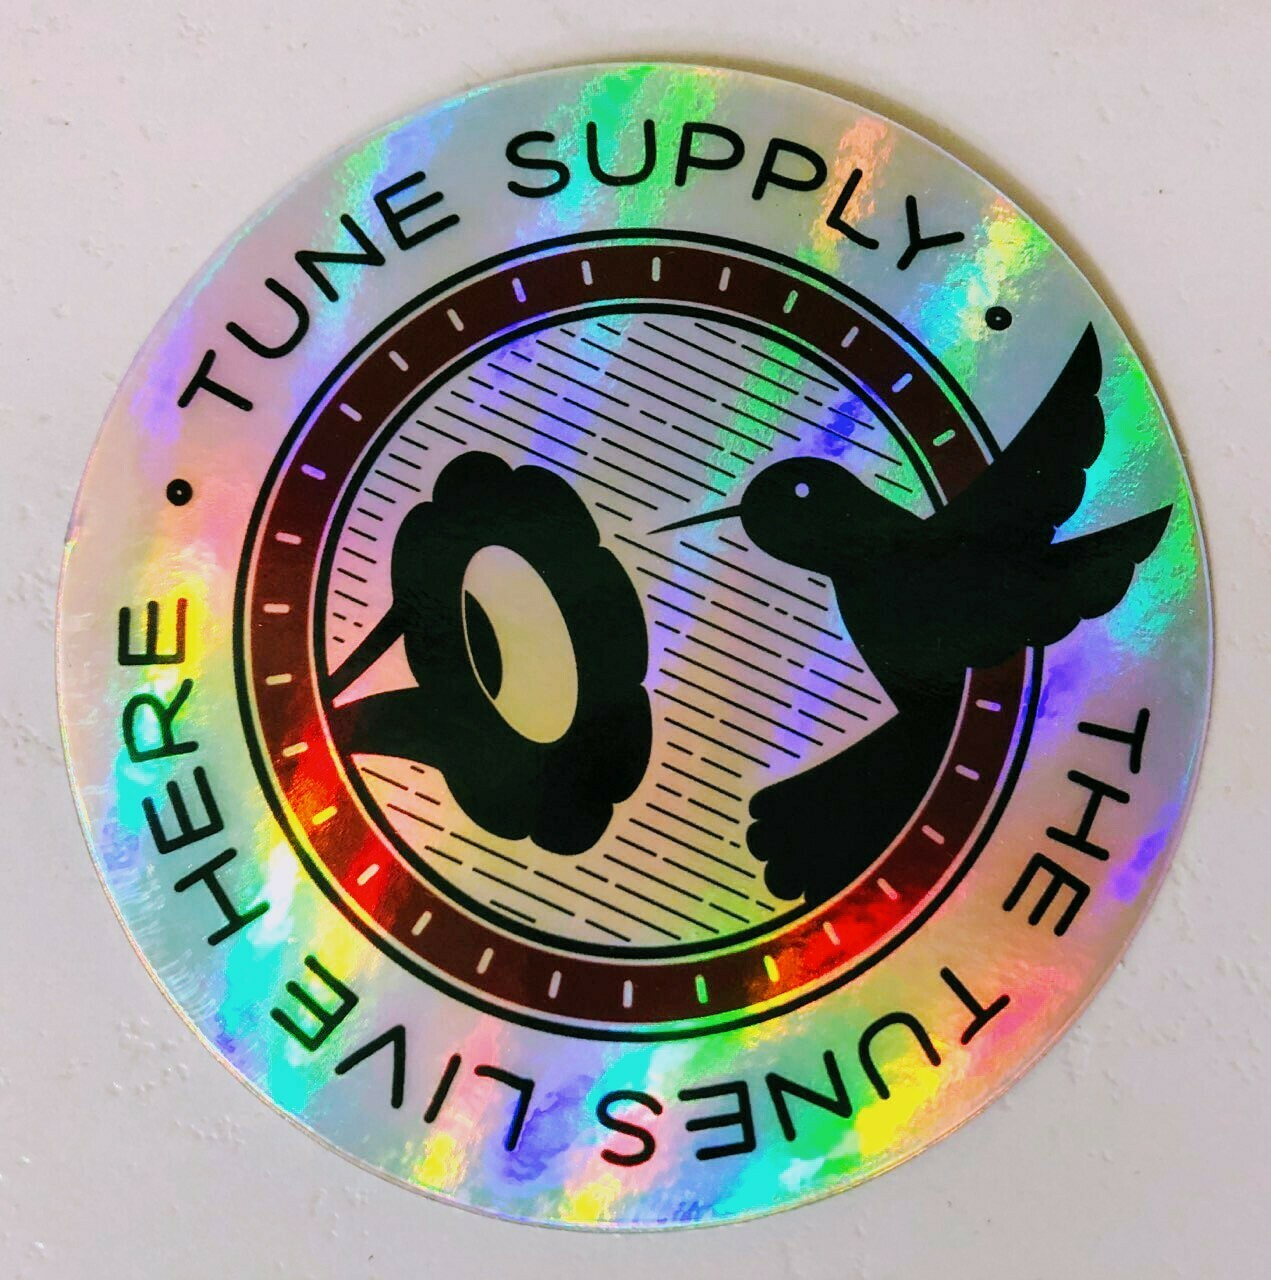 Two Limited Edition Holographic Vinyl Stickers